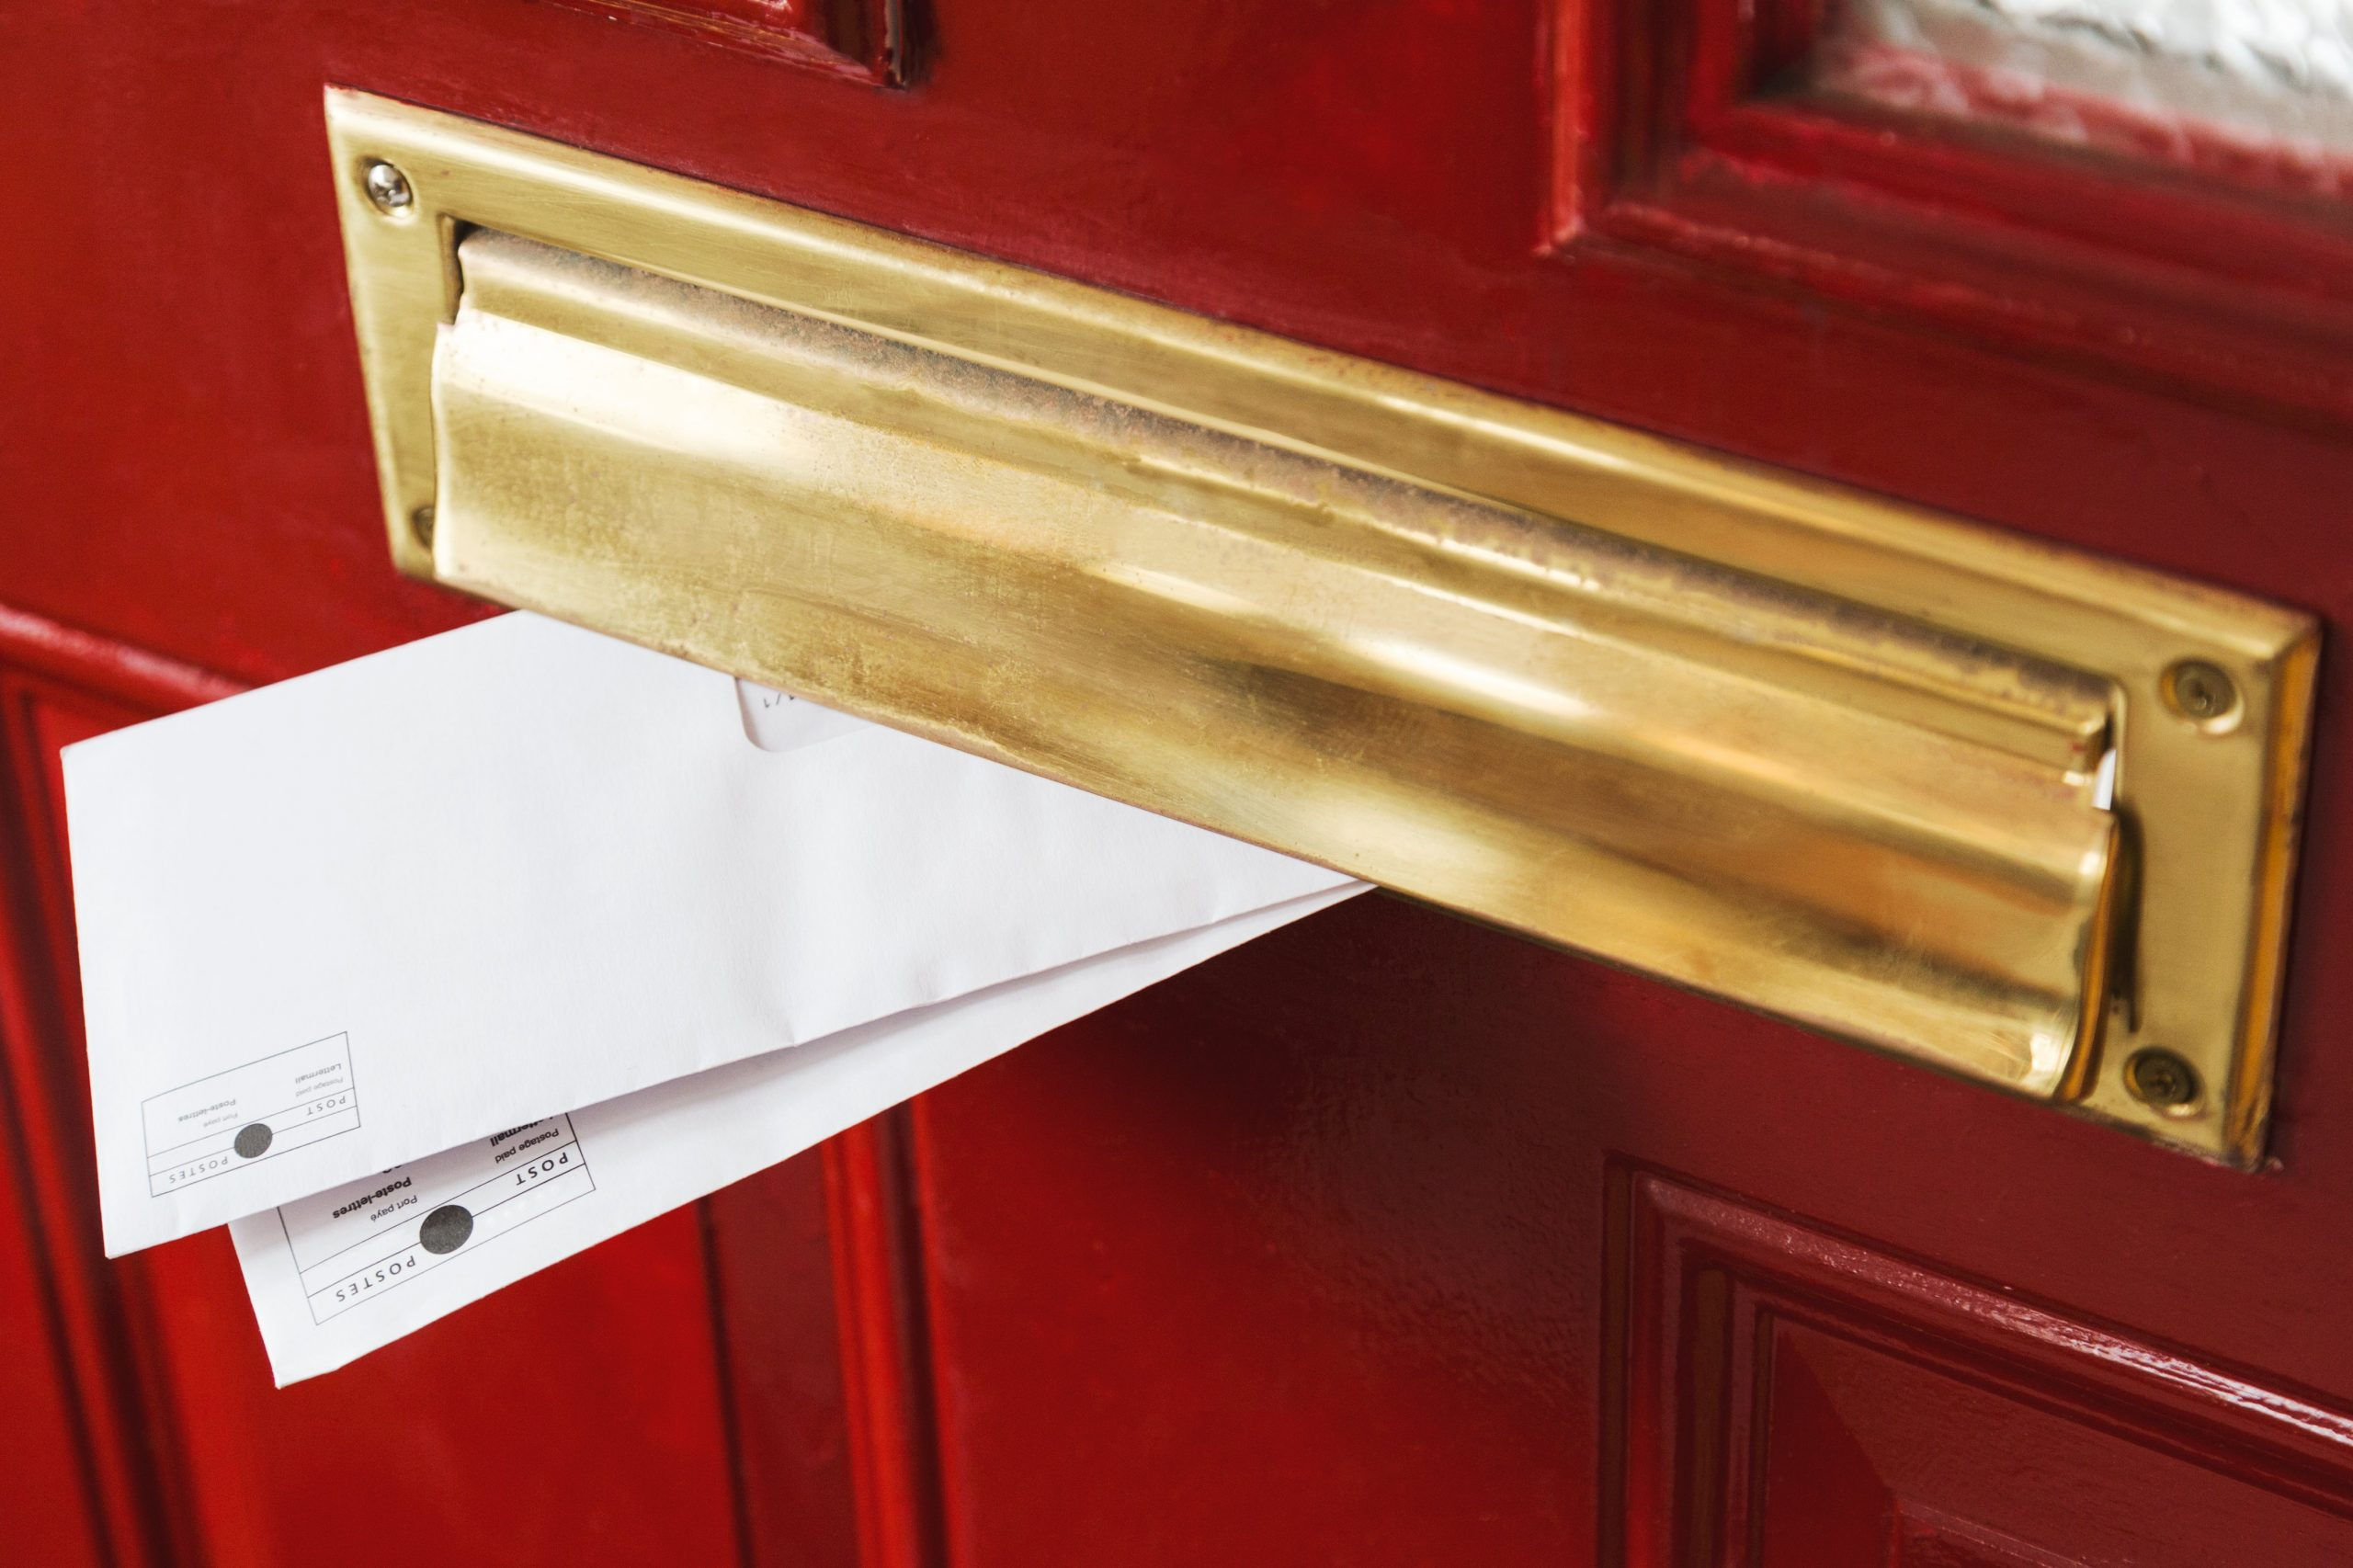 BEWARE OF PARCEL DELIVERY SCAMS IN RUN UP TO CHRISTMAS